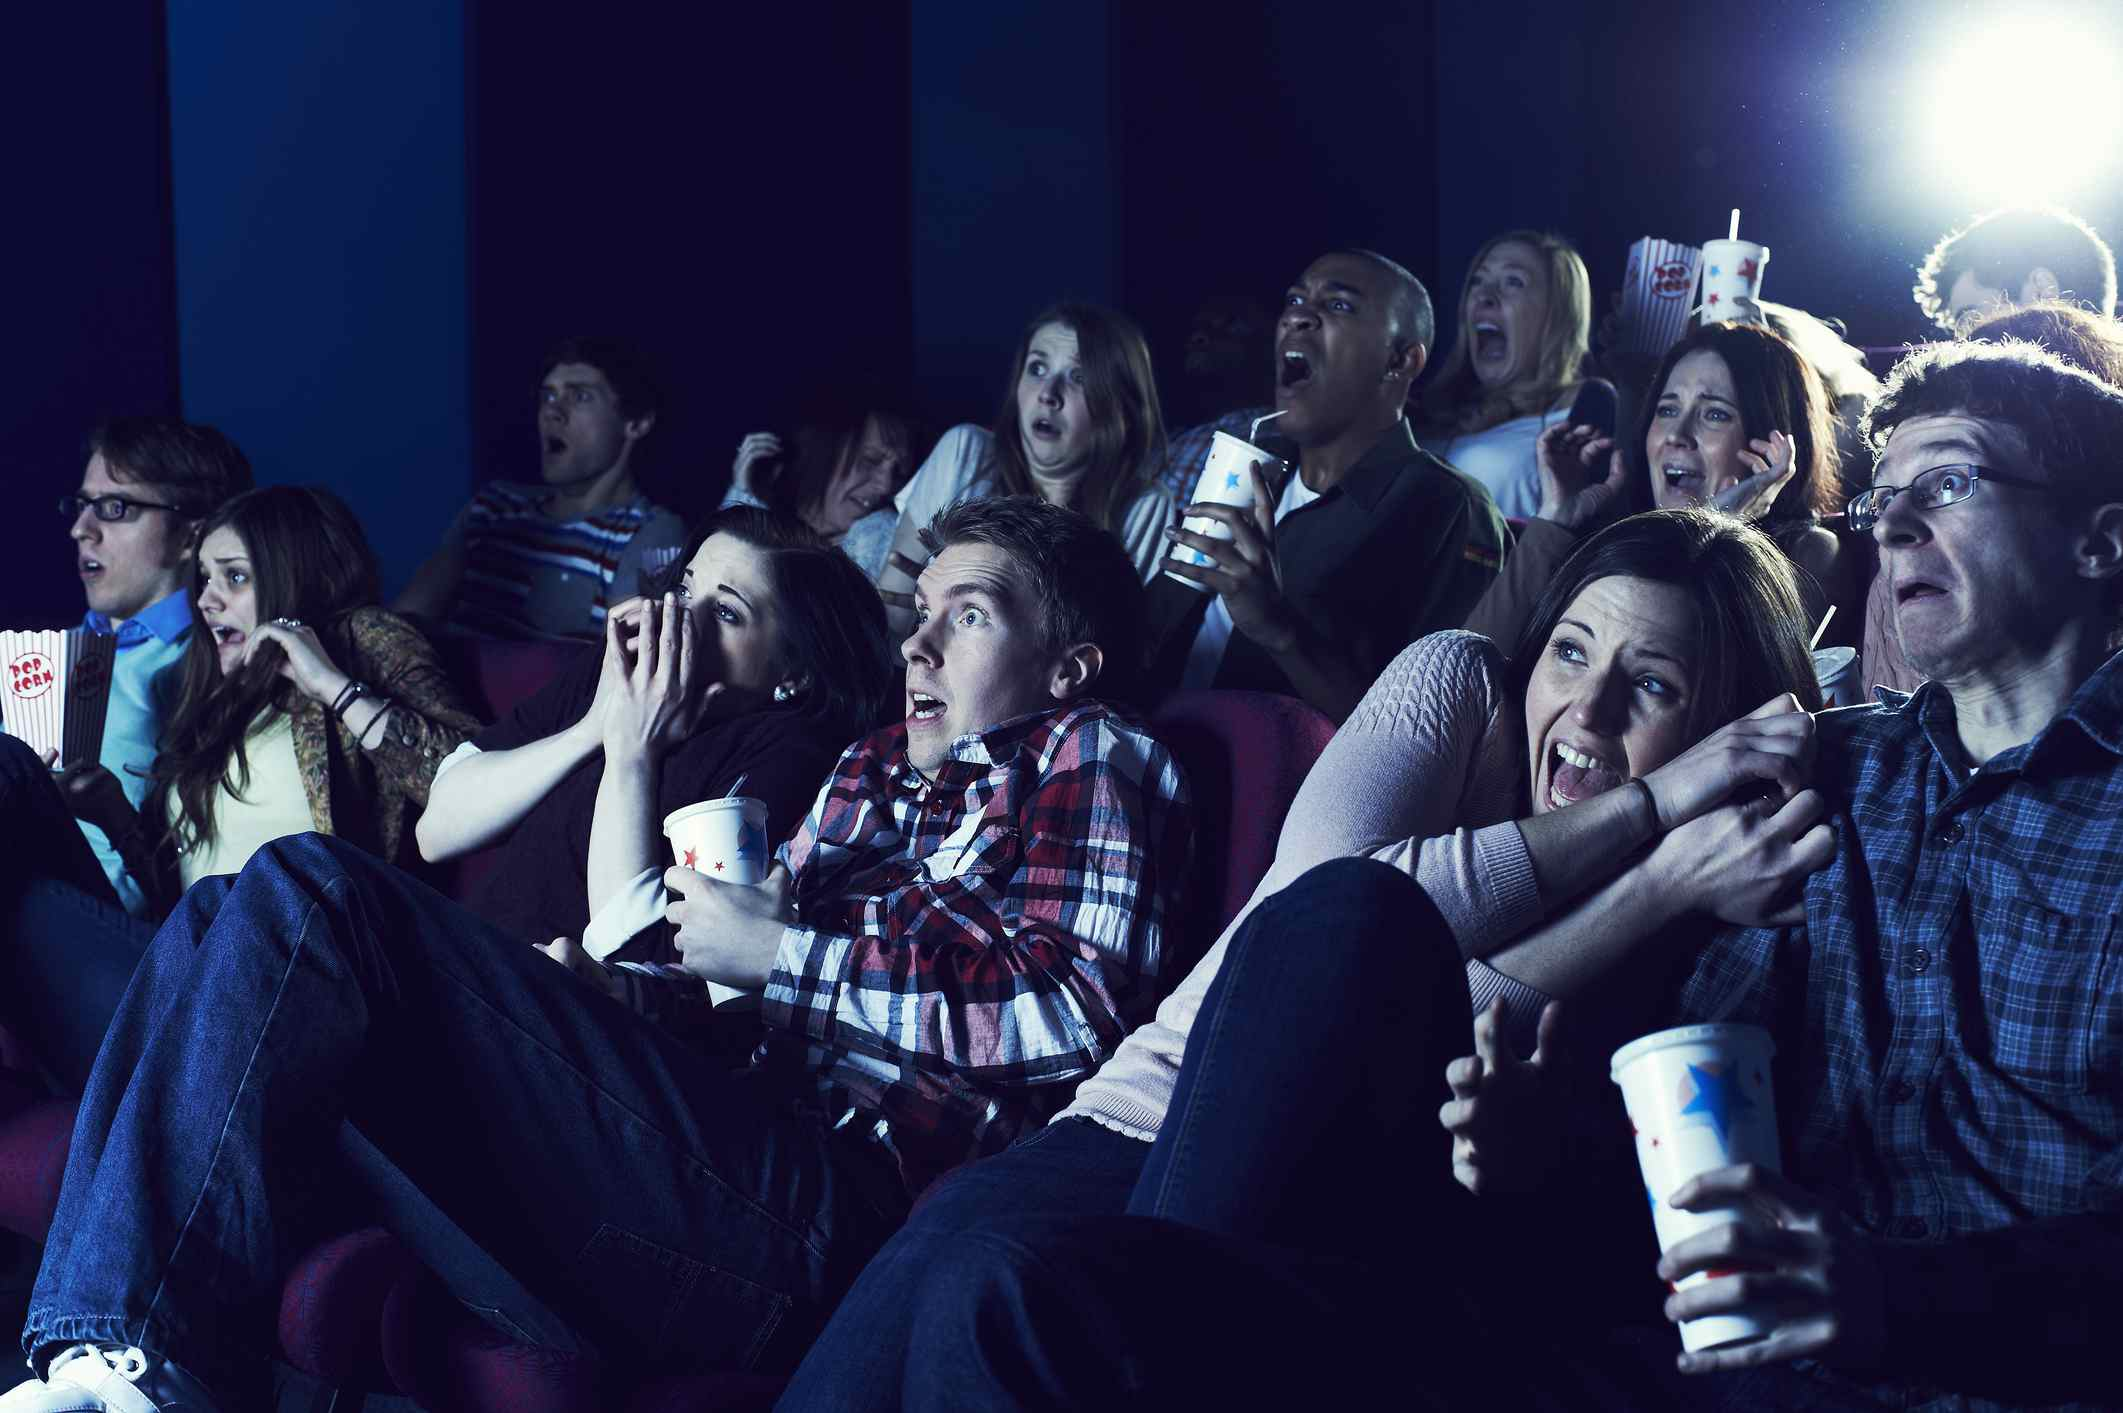 Scared people in a movie theater symbolize Barry Glassner's Culture of Fear.